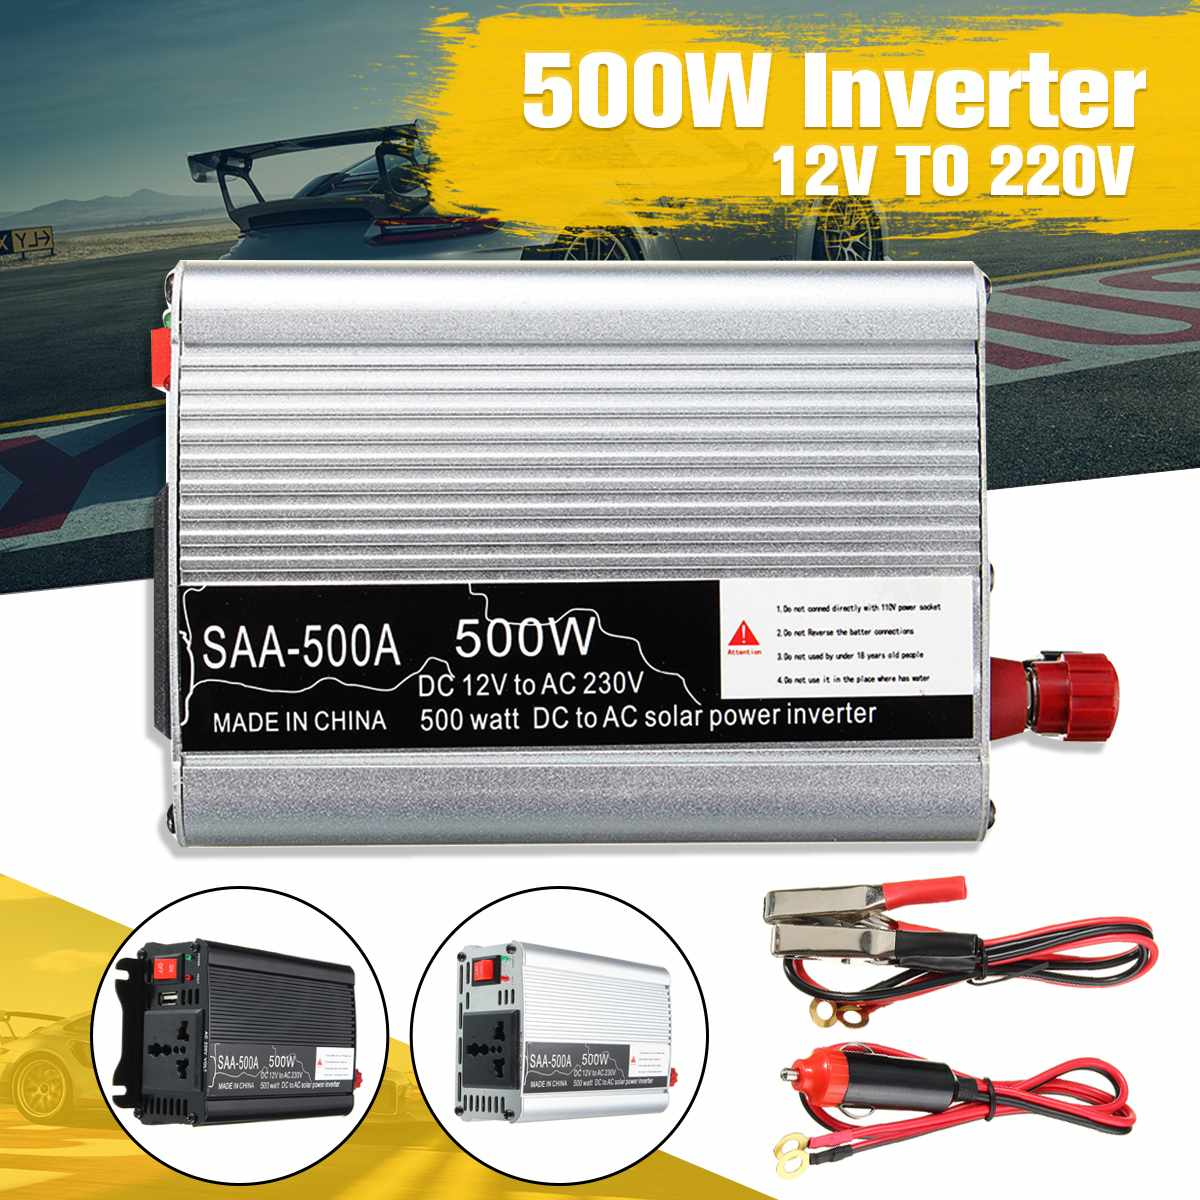 Portable 500W DC 12V to AC 220V USB Car Power Inverter Charger Converter Adapter DC 12 to AC 220 Modified Sine Wave Transformer